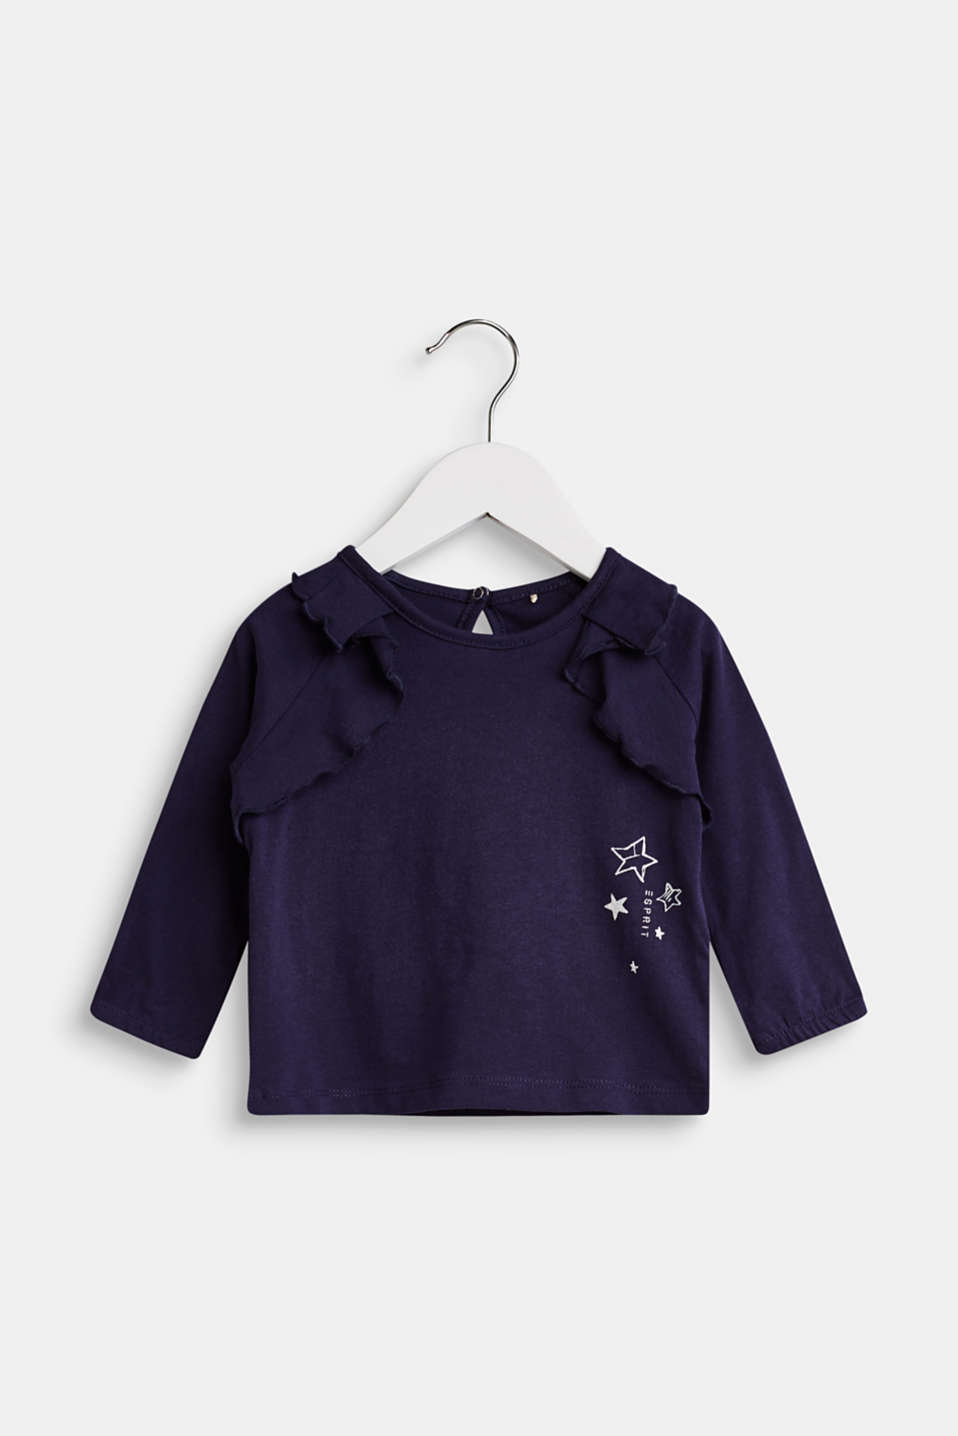 Esprit - Long sleeve top with frills, 100% cotton